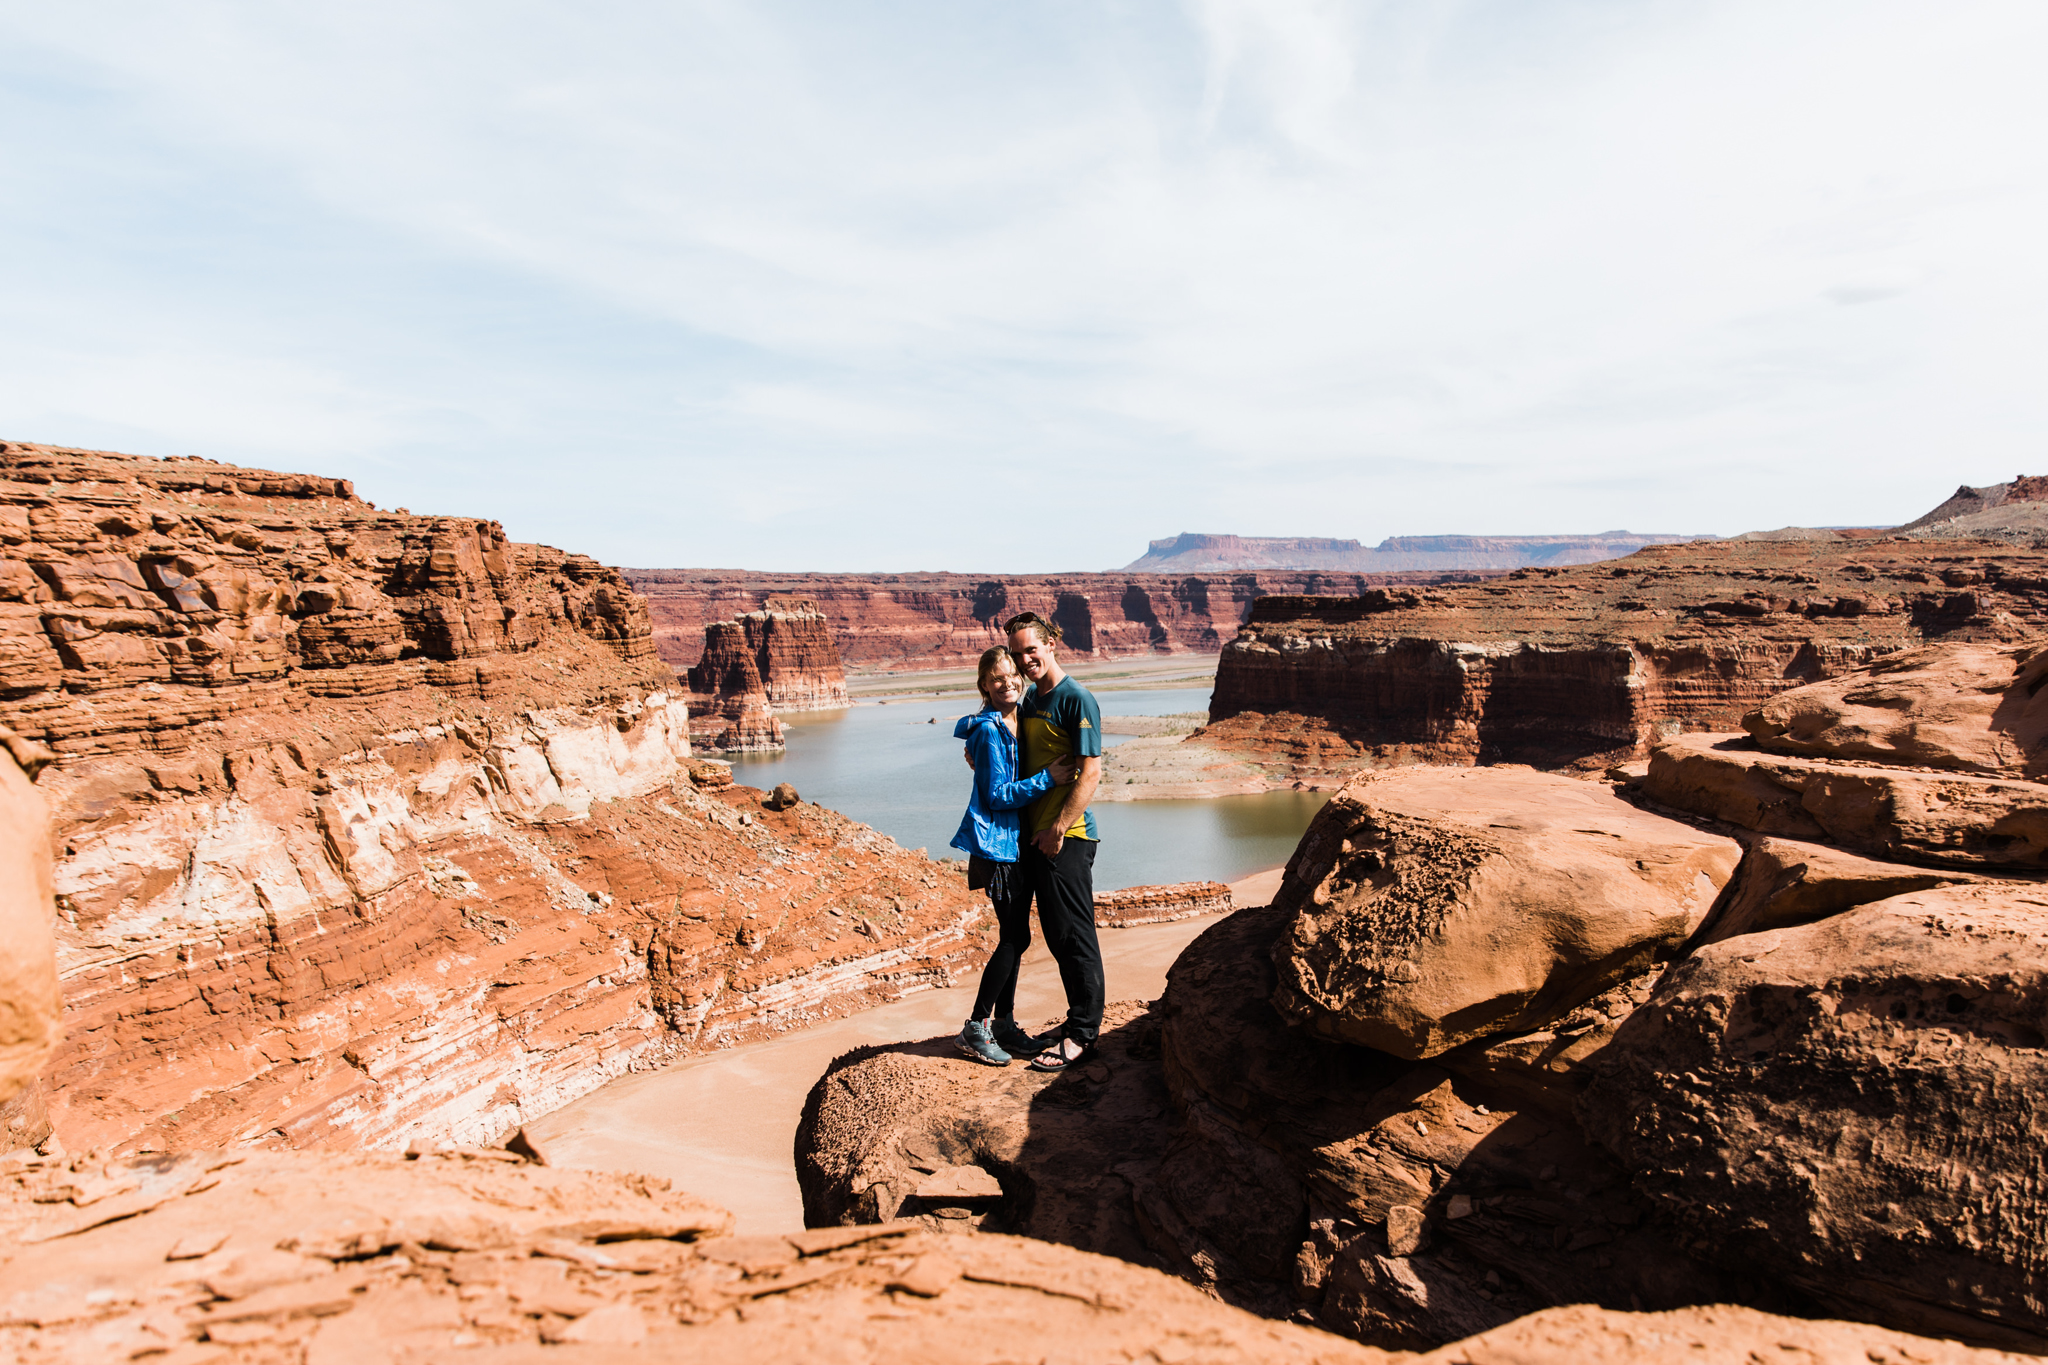 exploring southern utah | utah and california adventure elopement photographers | the hearnes adventure photography | www.thehearnes.com